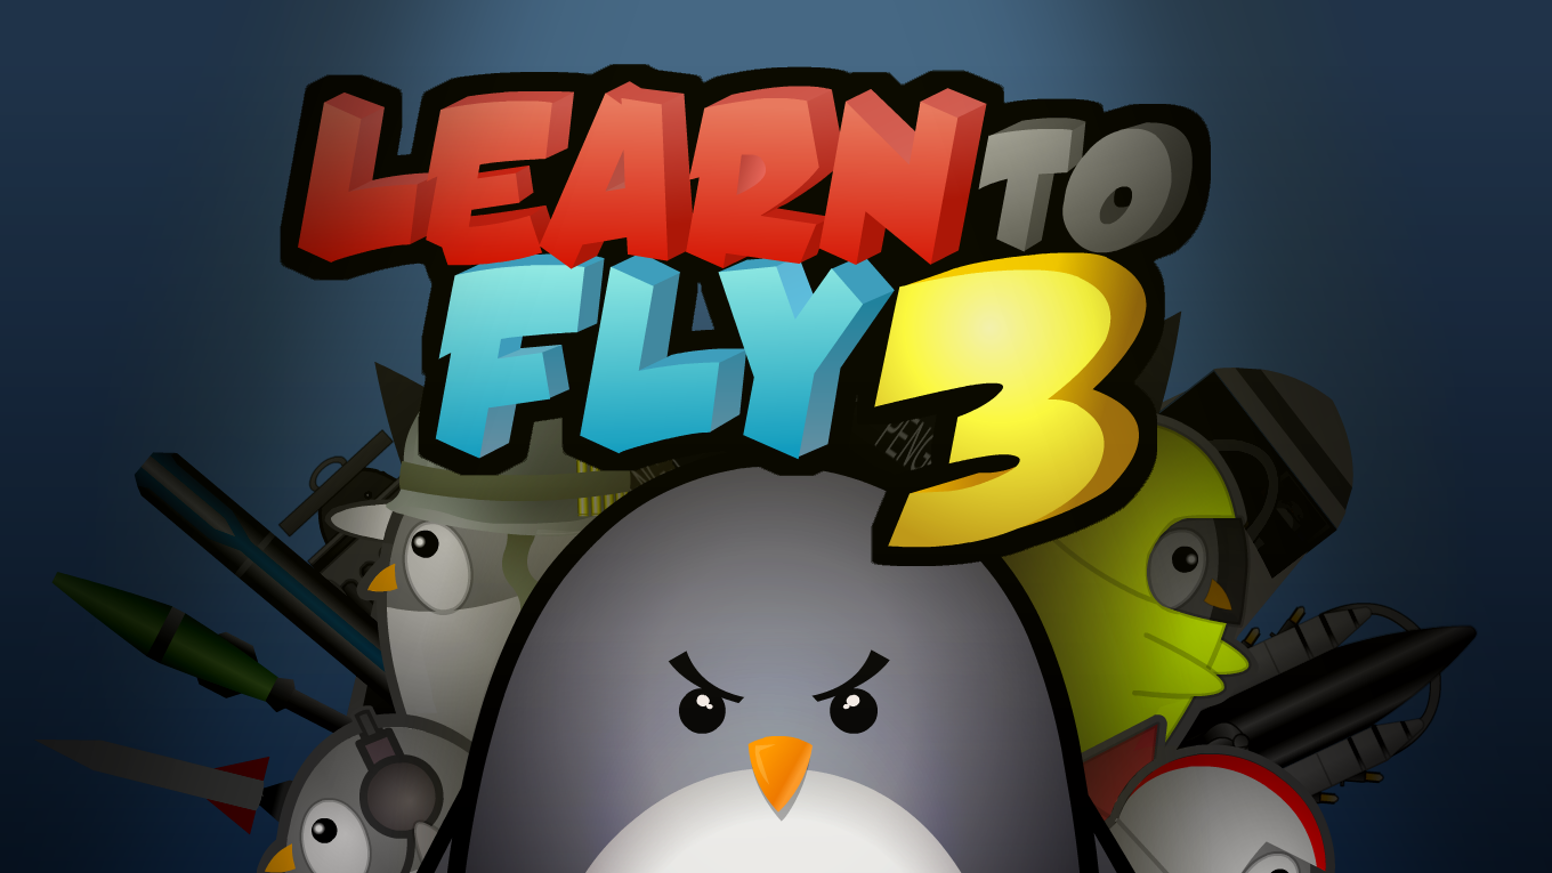 Our favorite penguin is back, and this time gets challenged to travel to space in this next title of the Learn to Fly series !